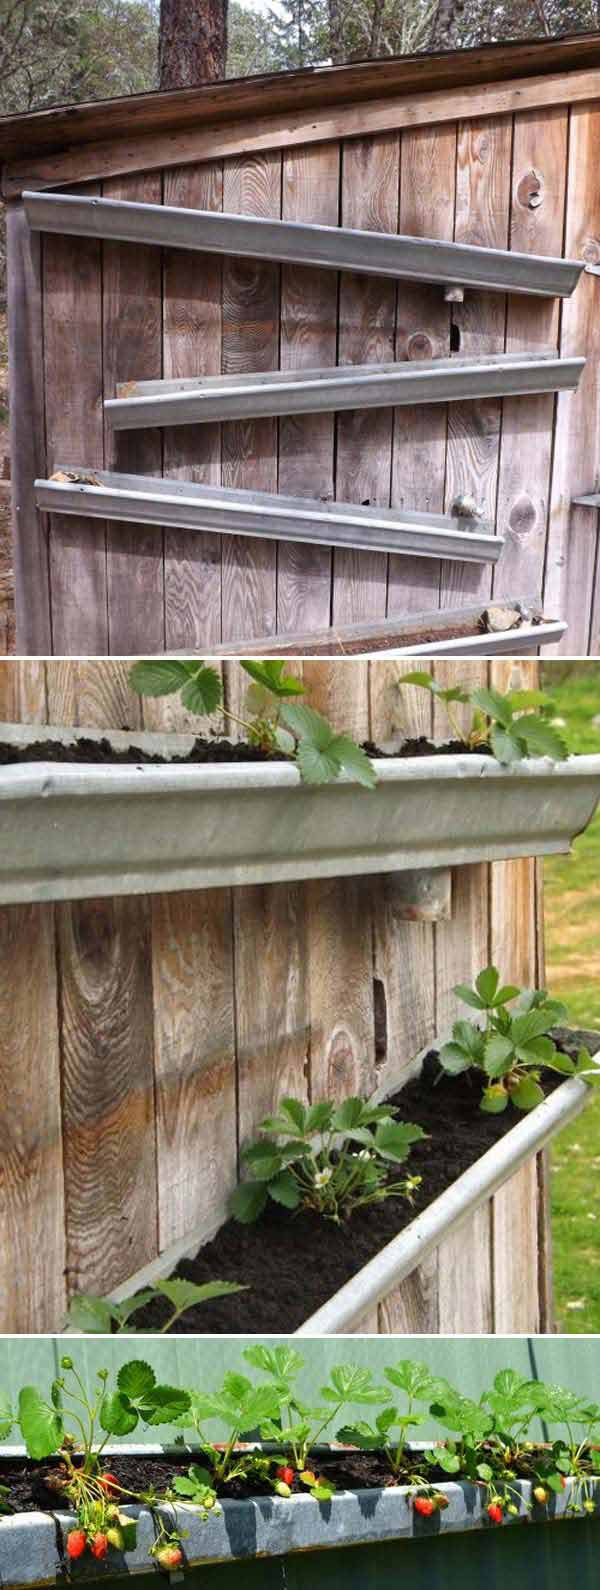 rain_gutters_strawberry_garden